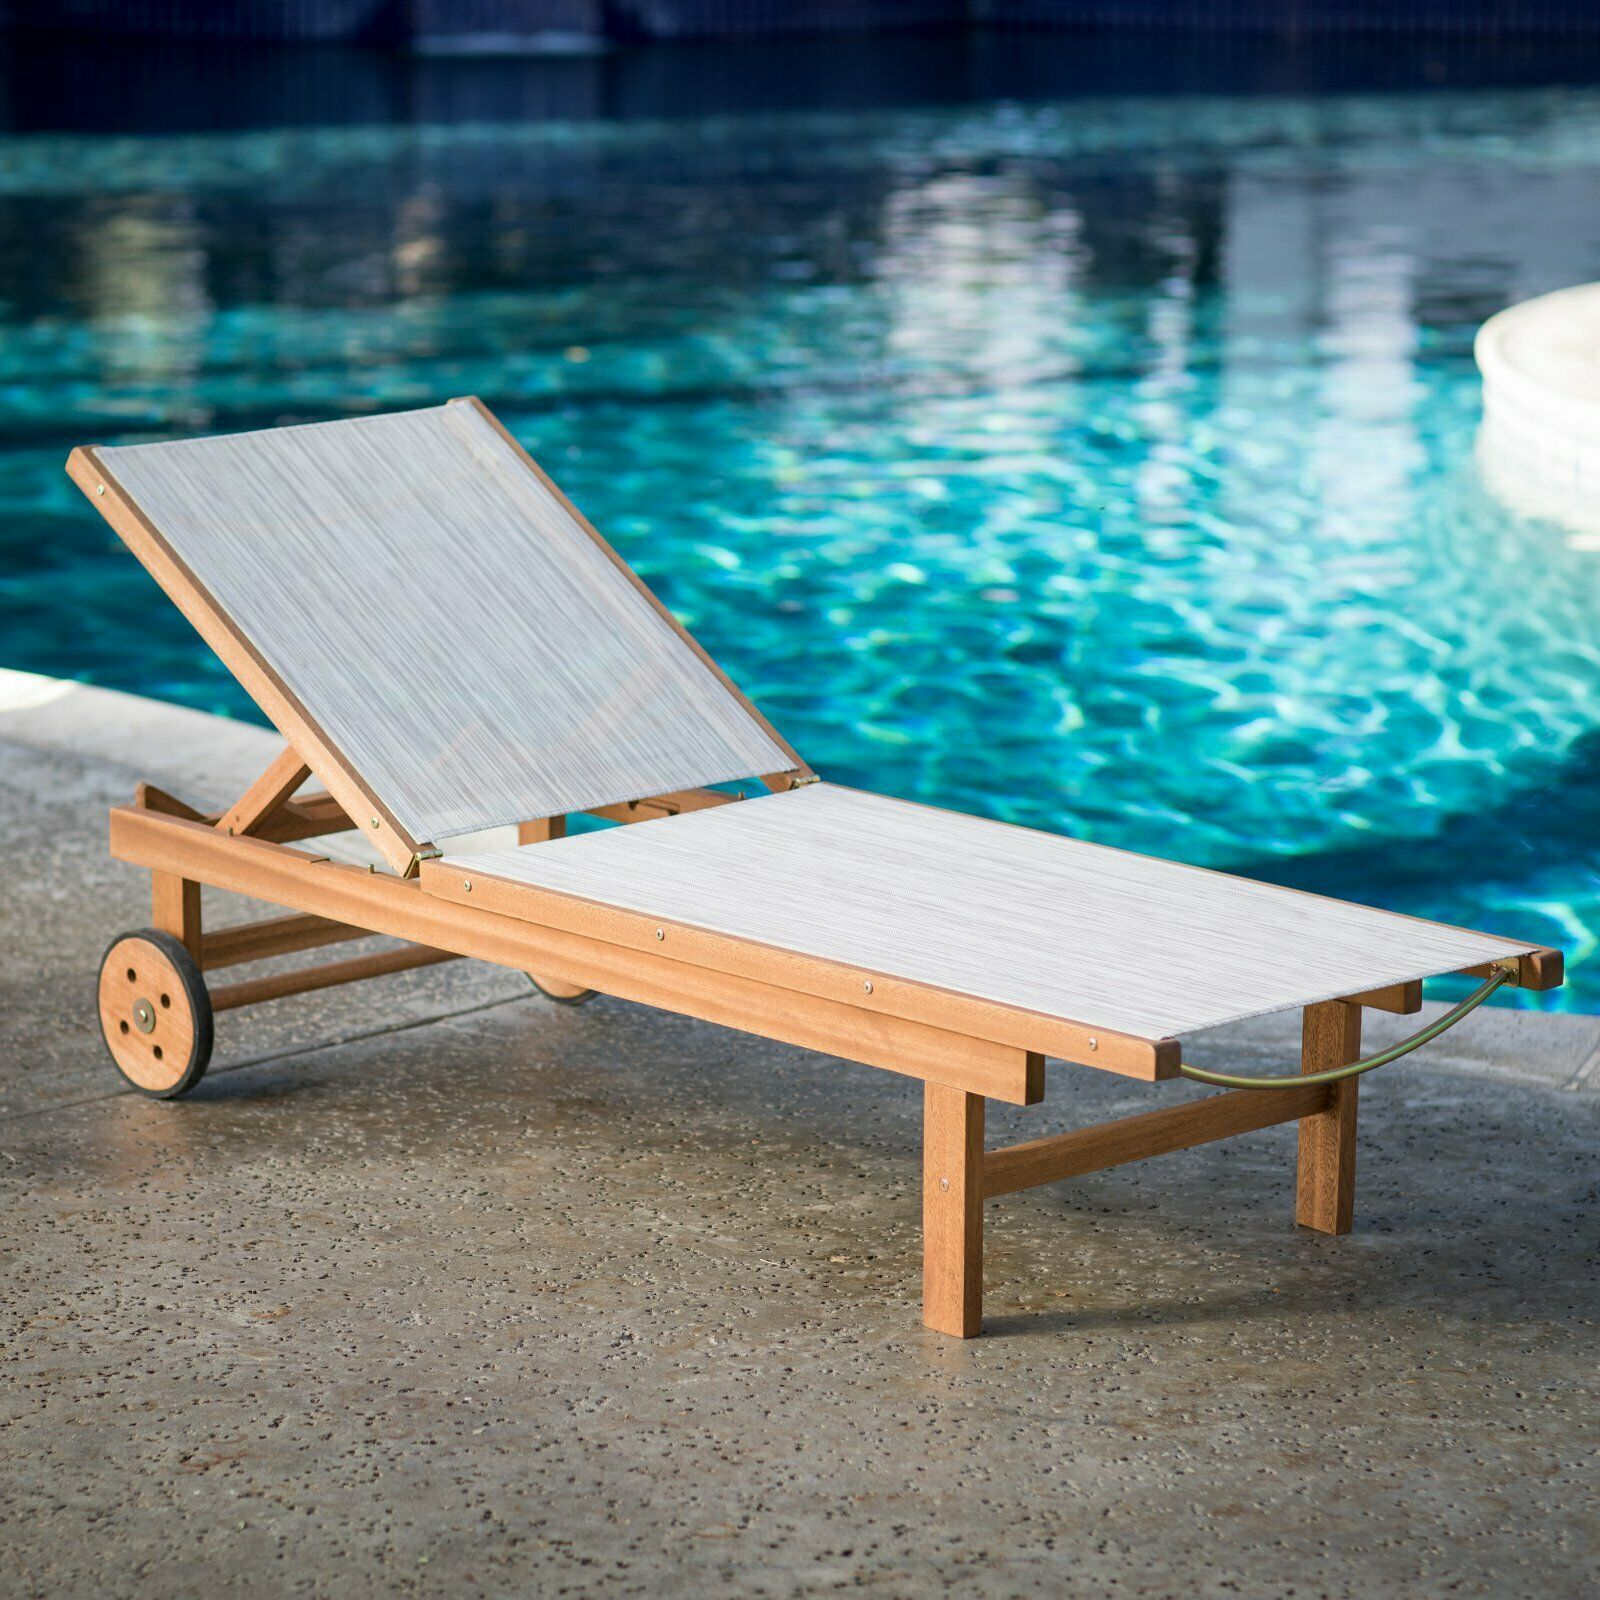 Natural Finish Eucalyptus Wood Sling Chaise Lounge Outdoor Pool Lounger w/Wheels image 6